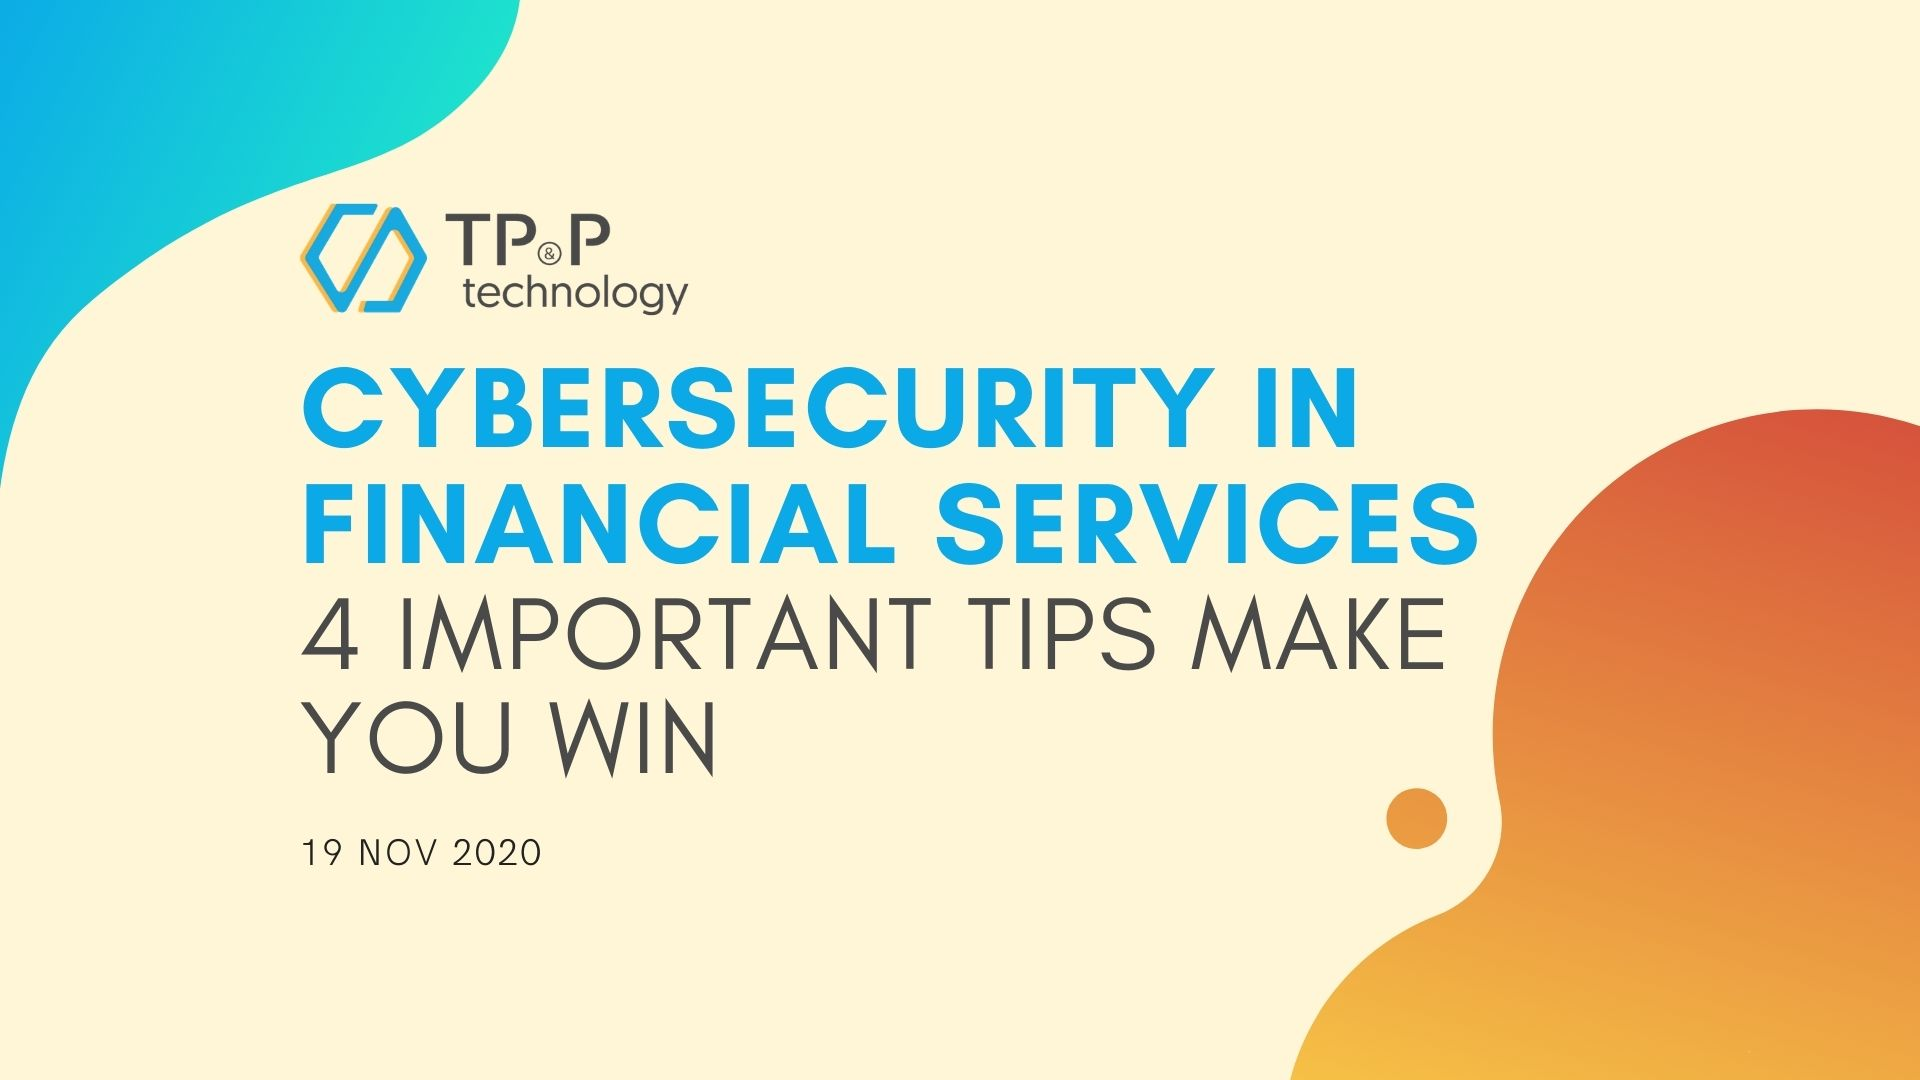 Cybersecurity In Financial Services: 4 Important Tips Make You Win